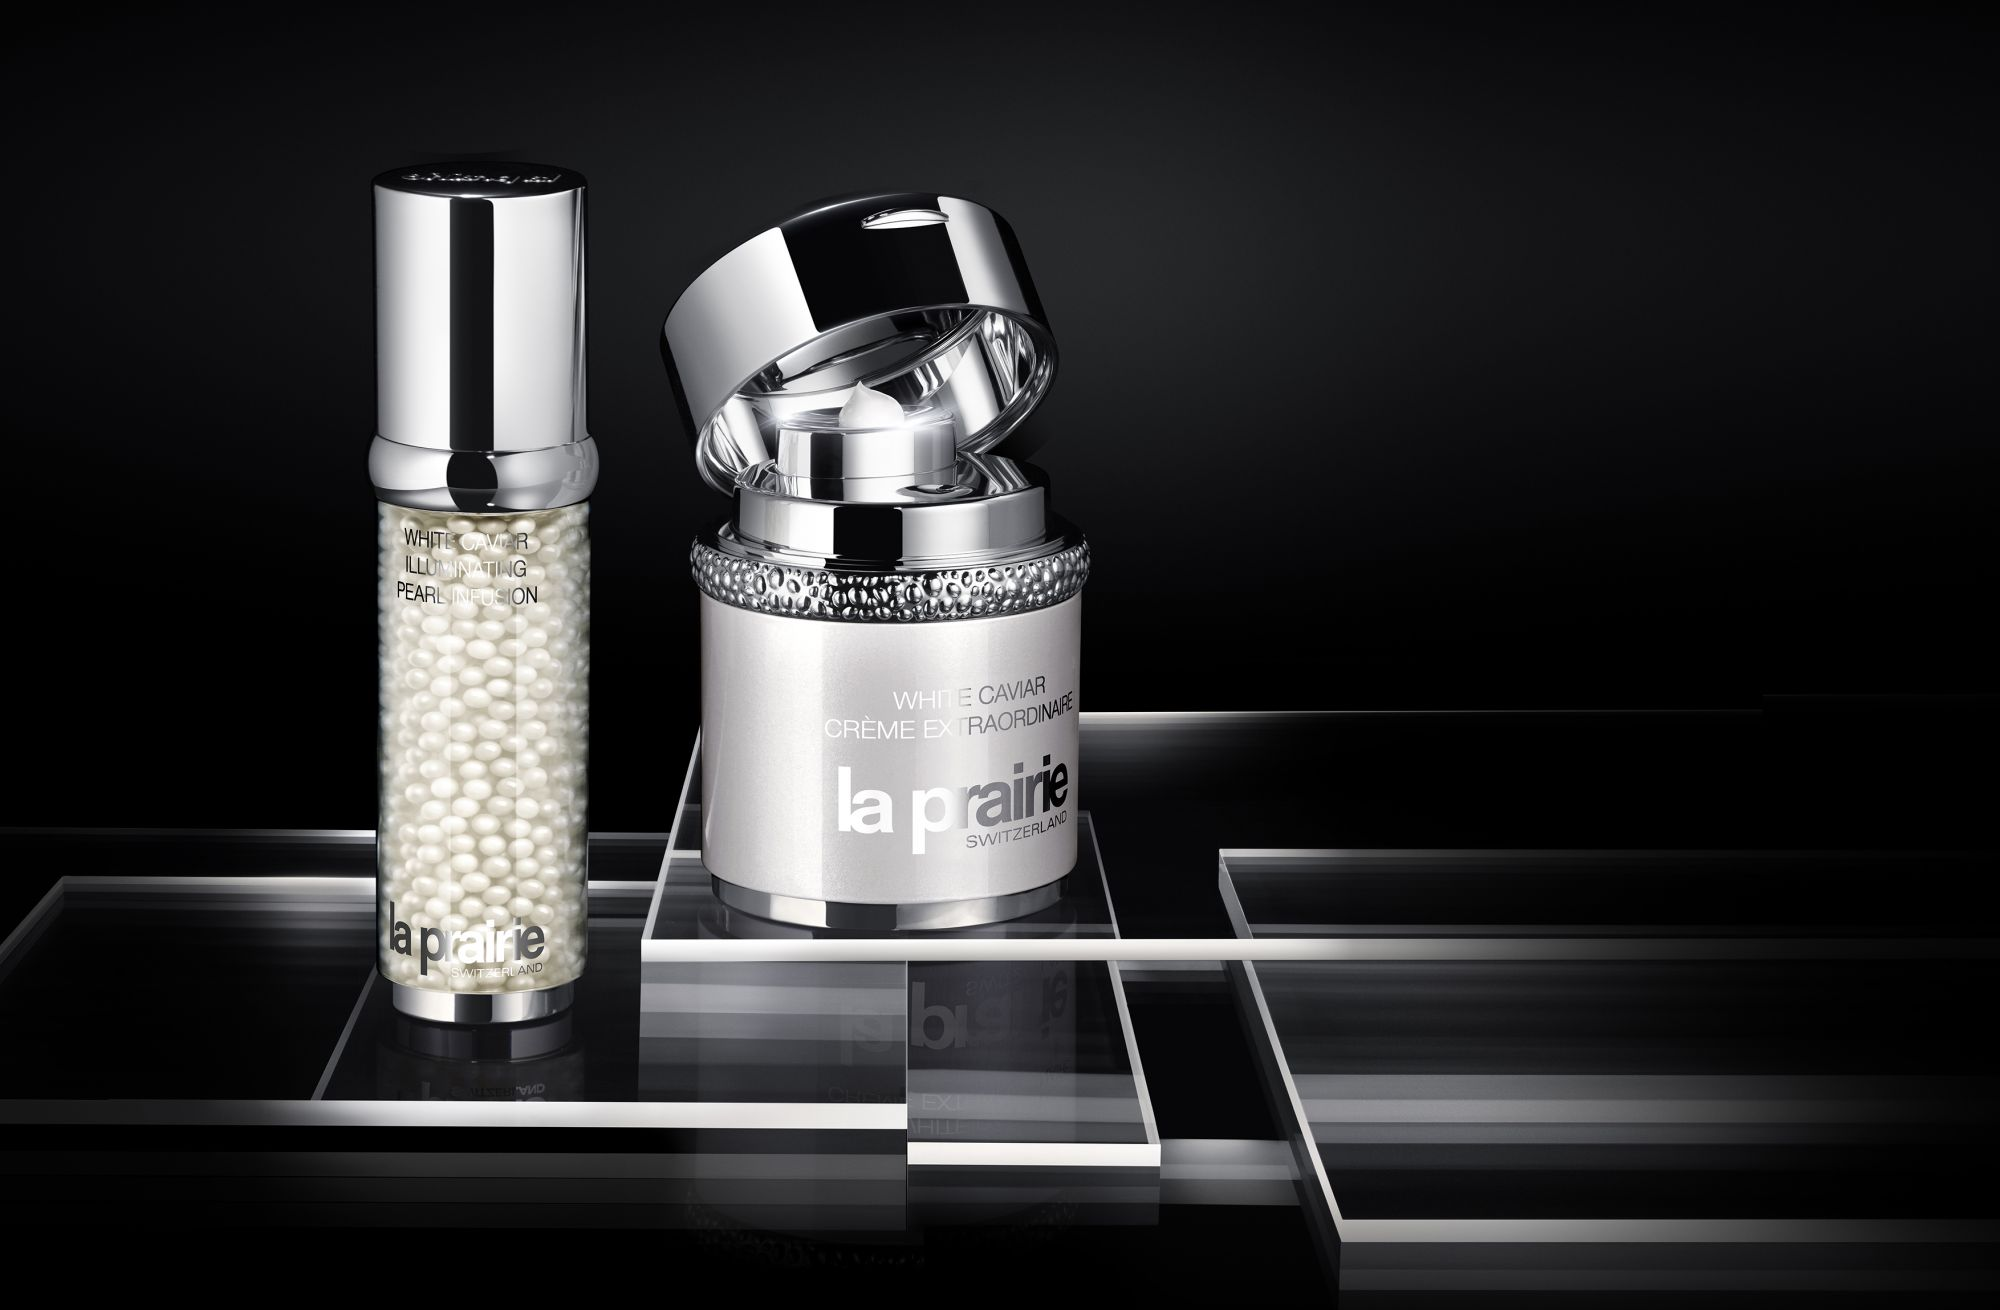 Uncover The Light Within With La Prairie's White Caviar Collection